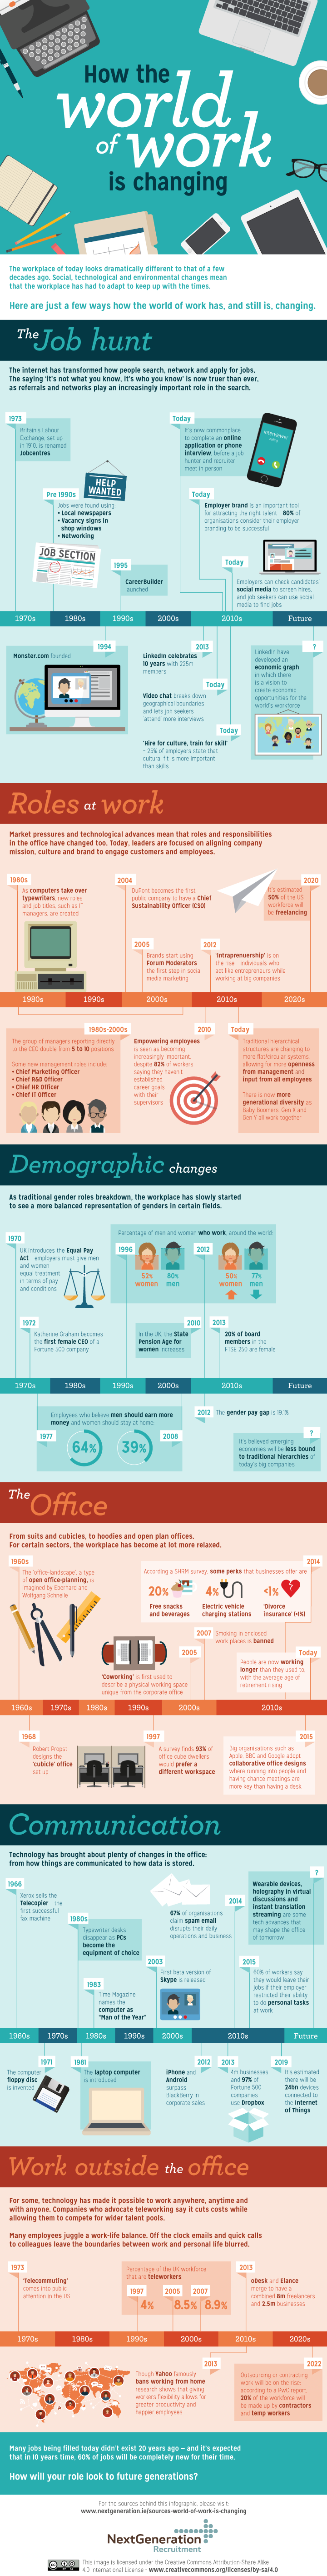 Changing workplace infographic